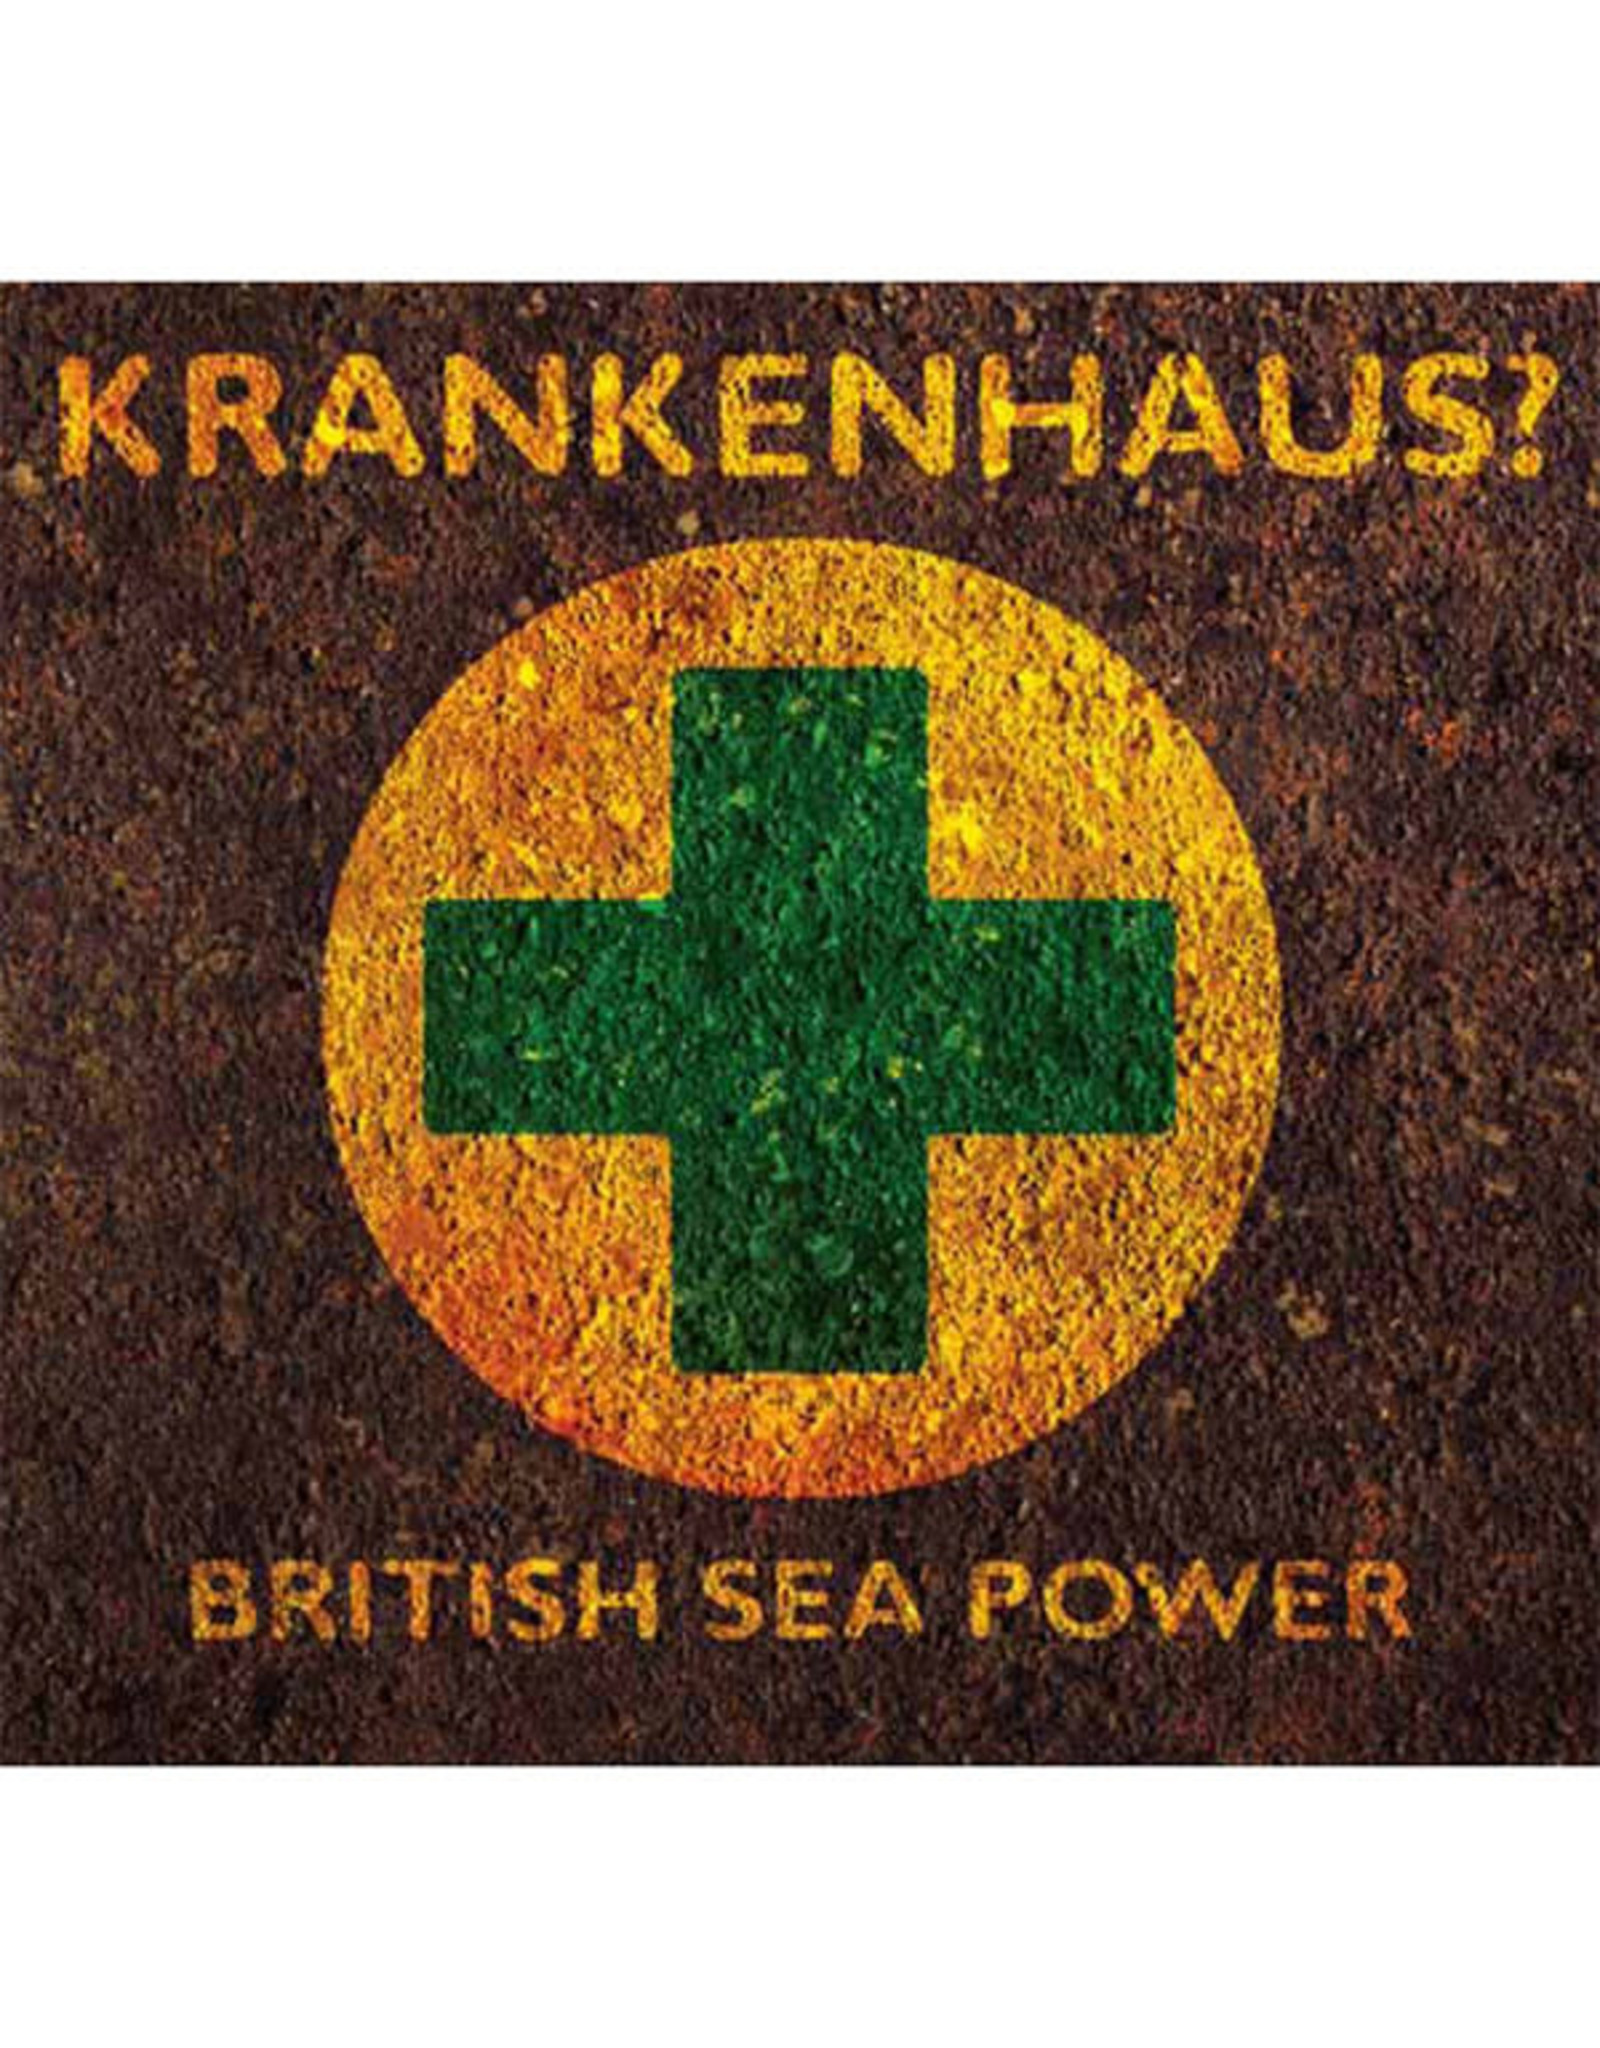 British Sea Power - Krankenhaus? CD